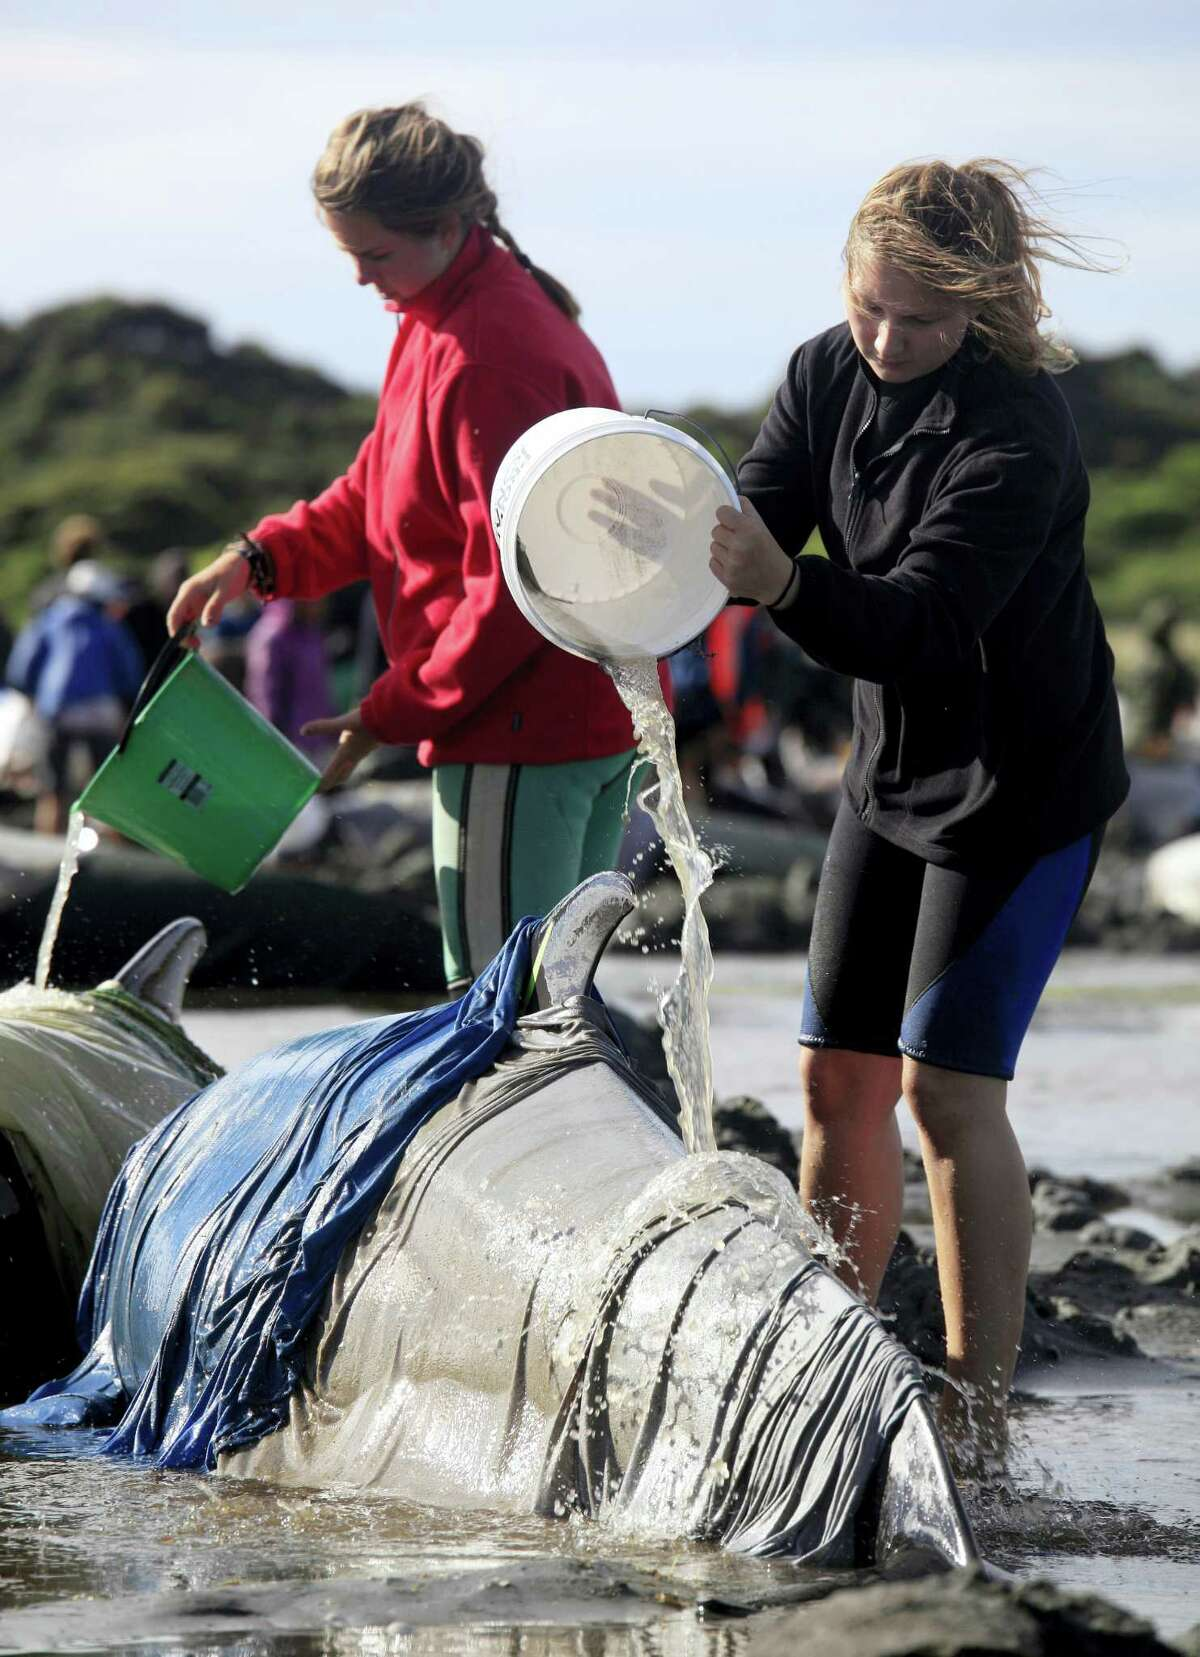 In this Friday, Feb 10, 2017 photo, volunteers pour water over beached whales at the remote Farewell Spit on the tip of the South Island of New Zealand. Volunteers in New Zealand managed to refloat about 100 surviving pilot whales on Saturday, Feb. 11 and are hoping they will swim back out to sea after more than 400 of the creatures swam aground at a remote beach.